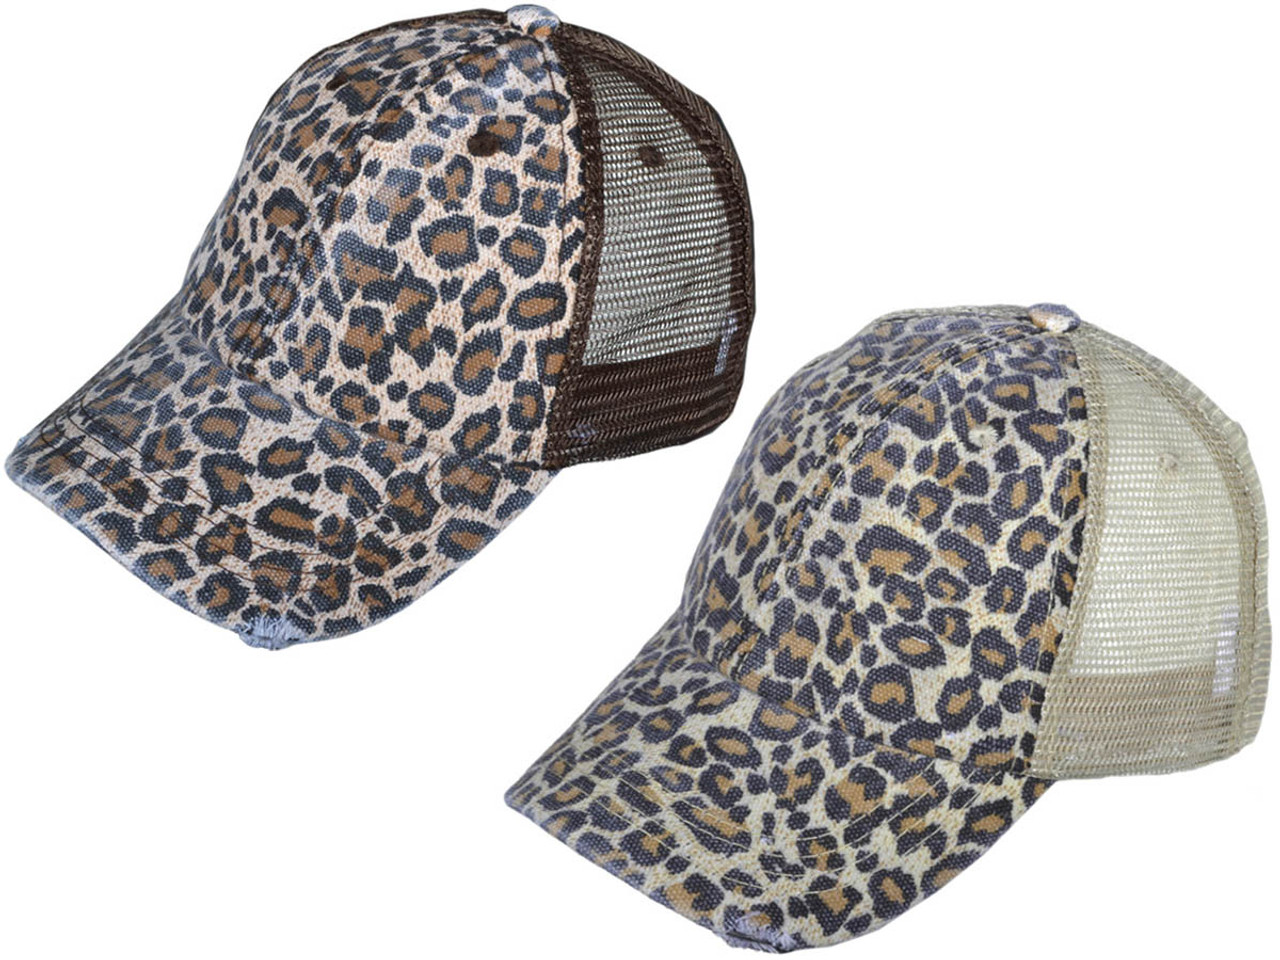 4aff3d51670 Previous. bd-2.5-bd · Animal Print Vintage Trucker Hats Soft Structured ...